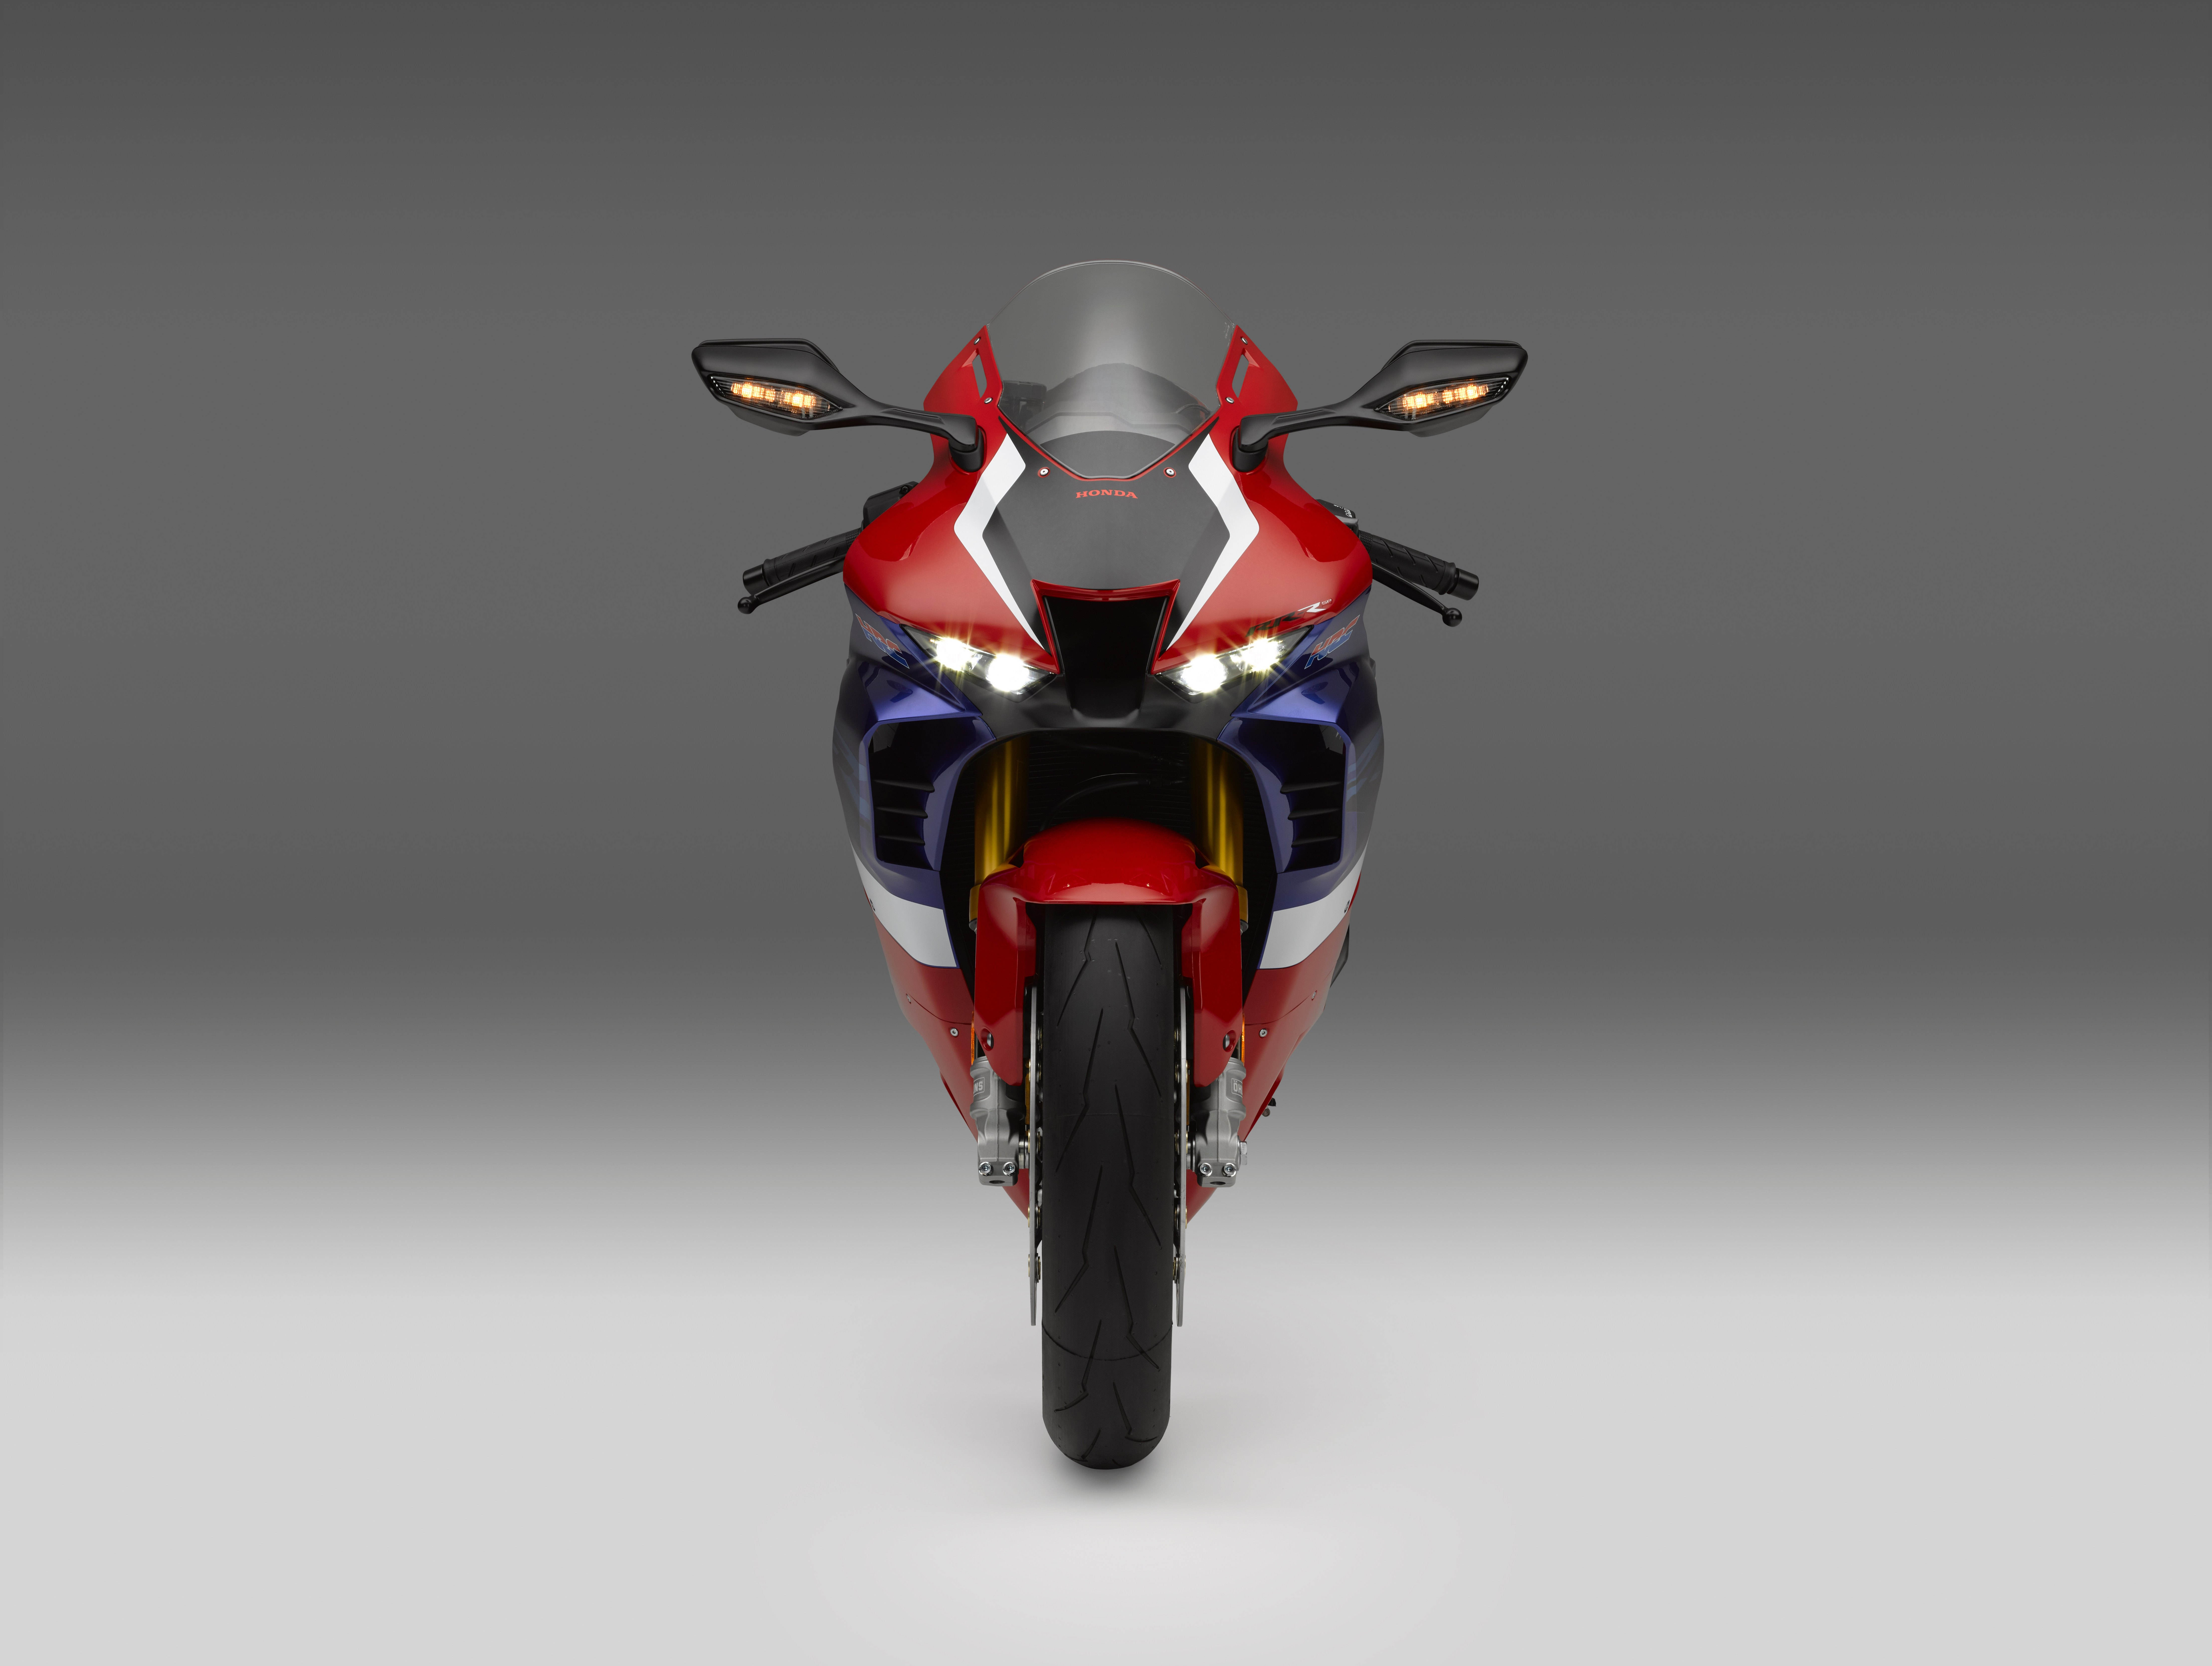 Honda unveils upgraded CBR1000RR-R Fireblade ahead of EICMA debut